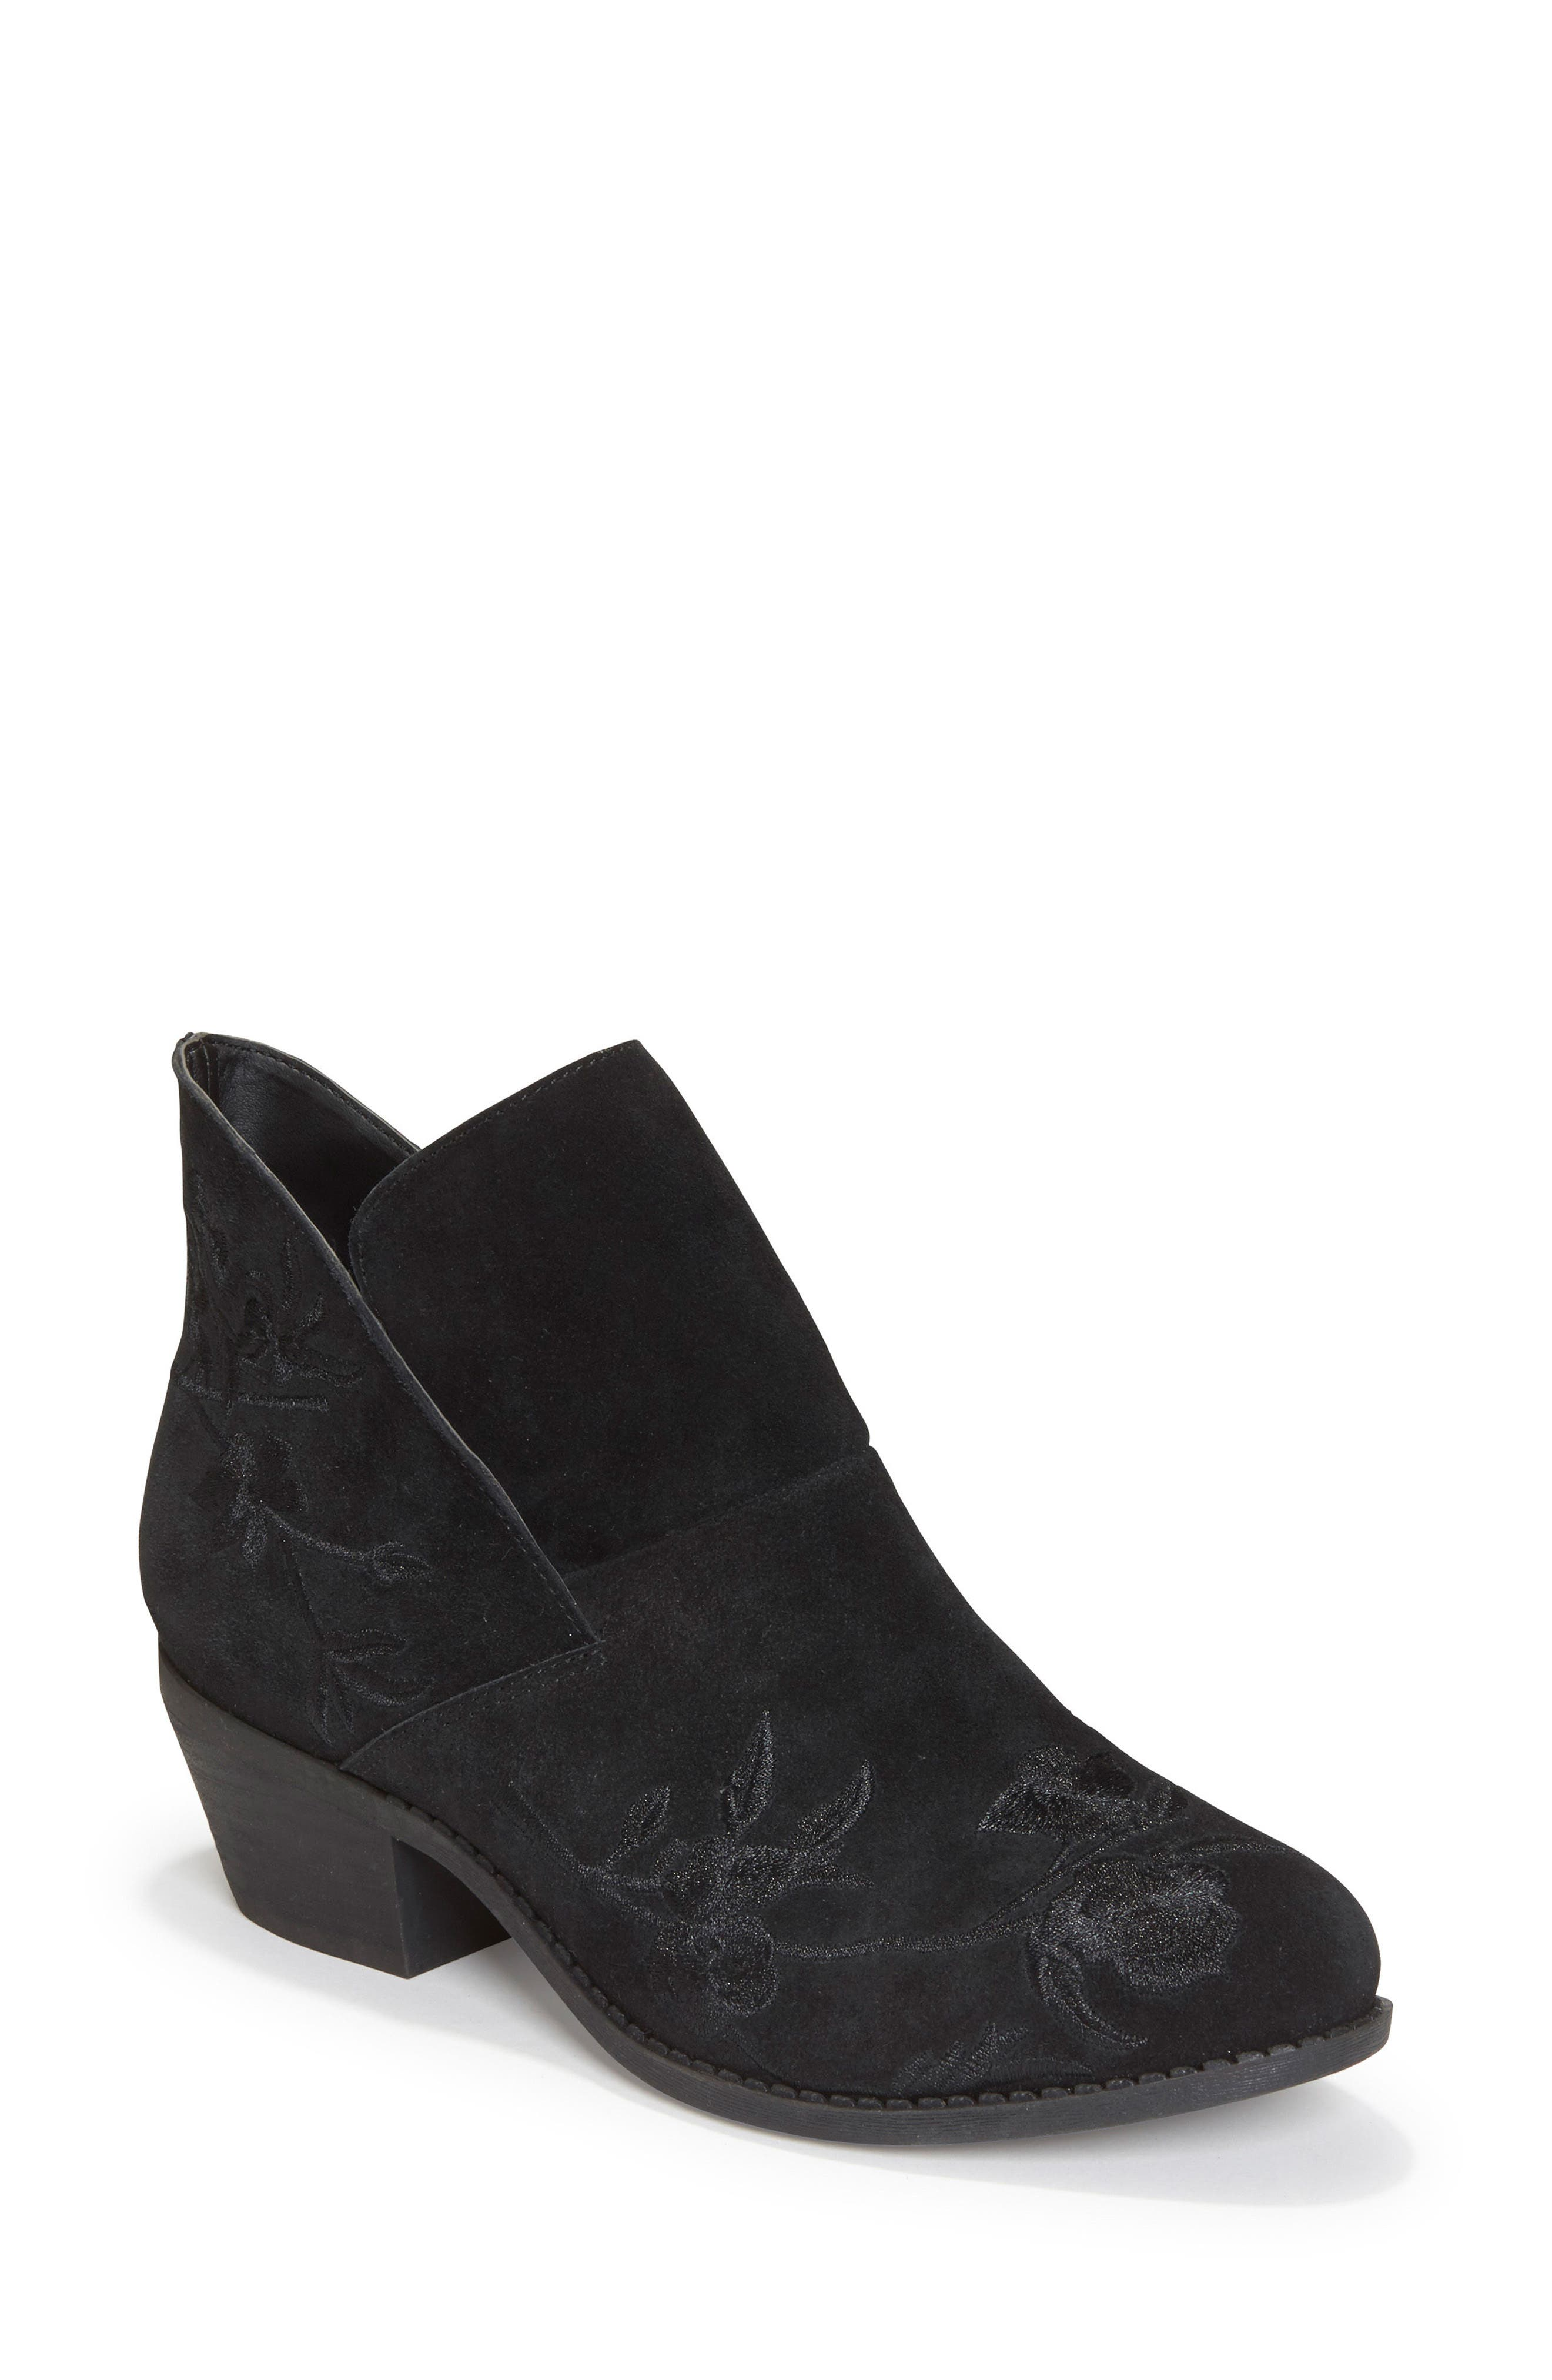 Me Too Zena Ankle Boot,                         Main,                         color, Black Floral Suede